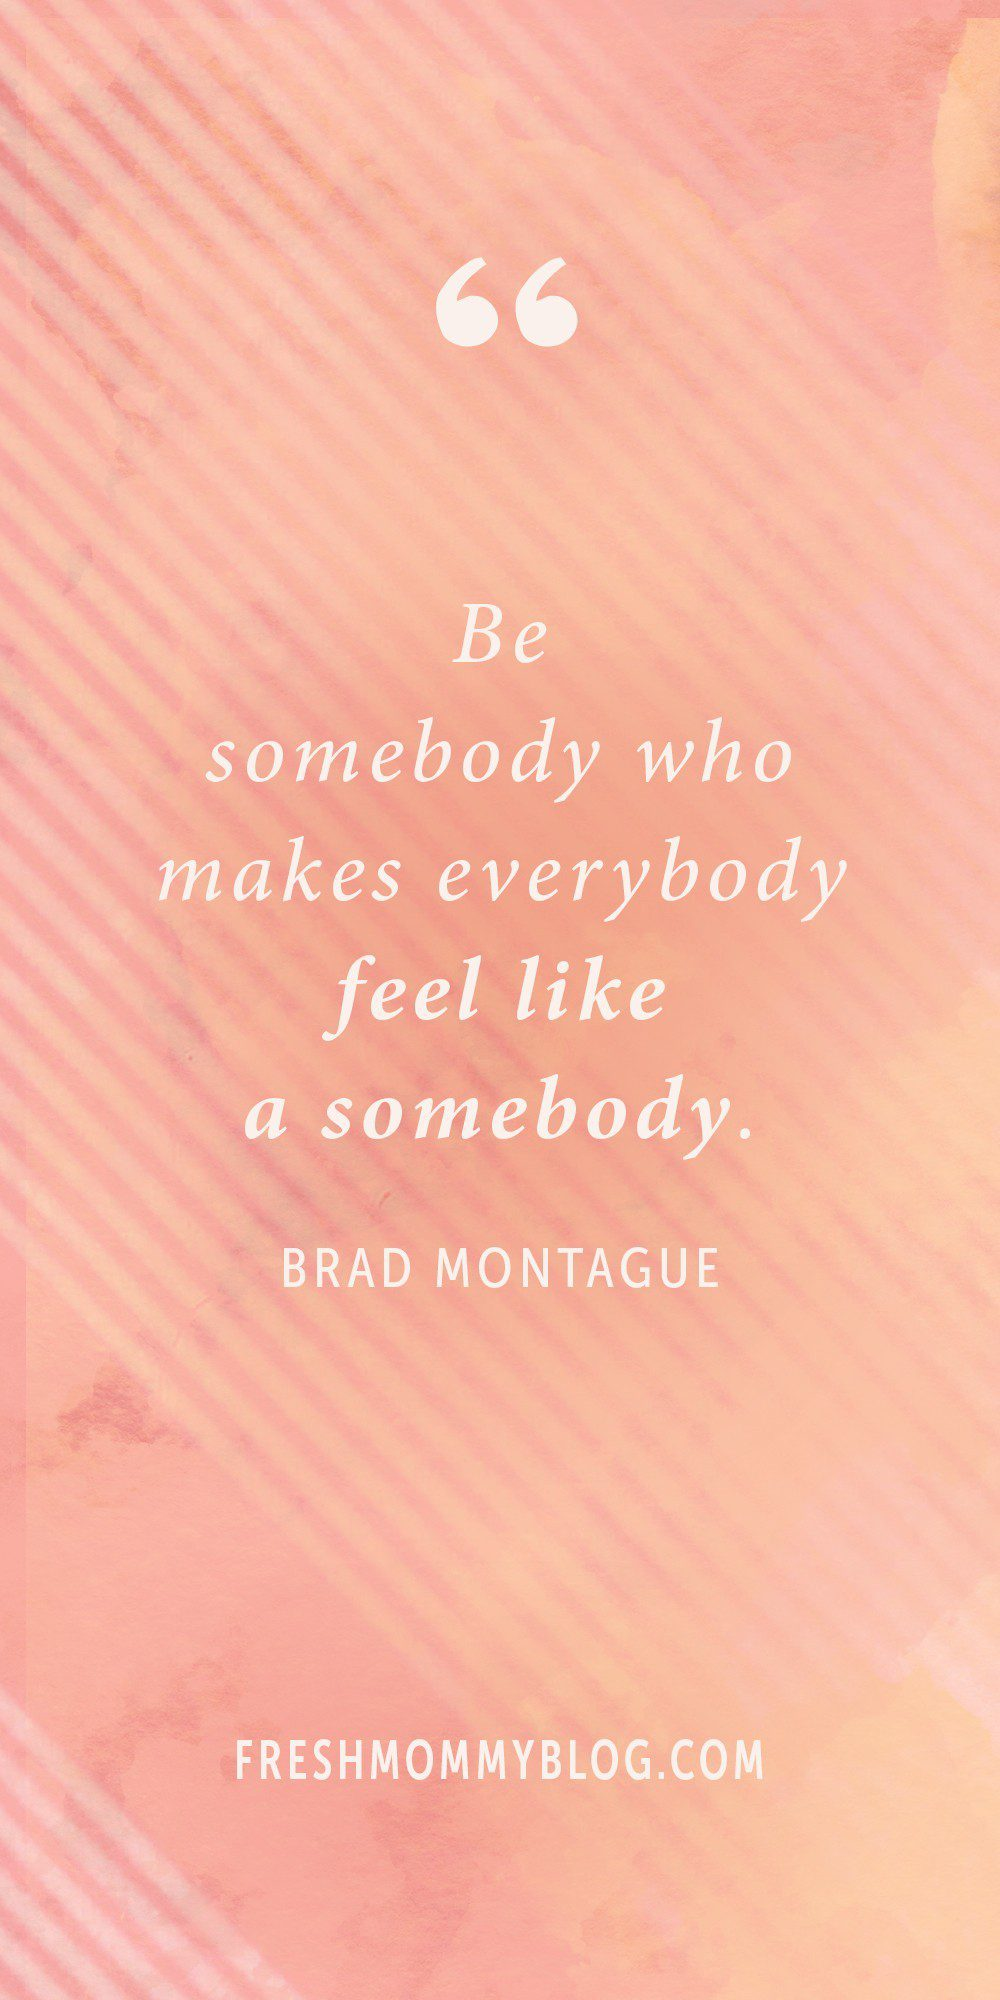 """Be somebody who makes everybody fell like a somebody."" Brad Montague 